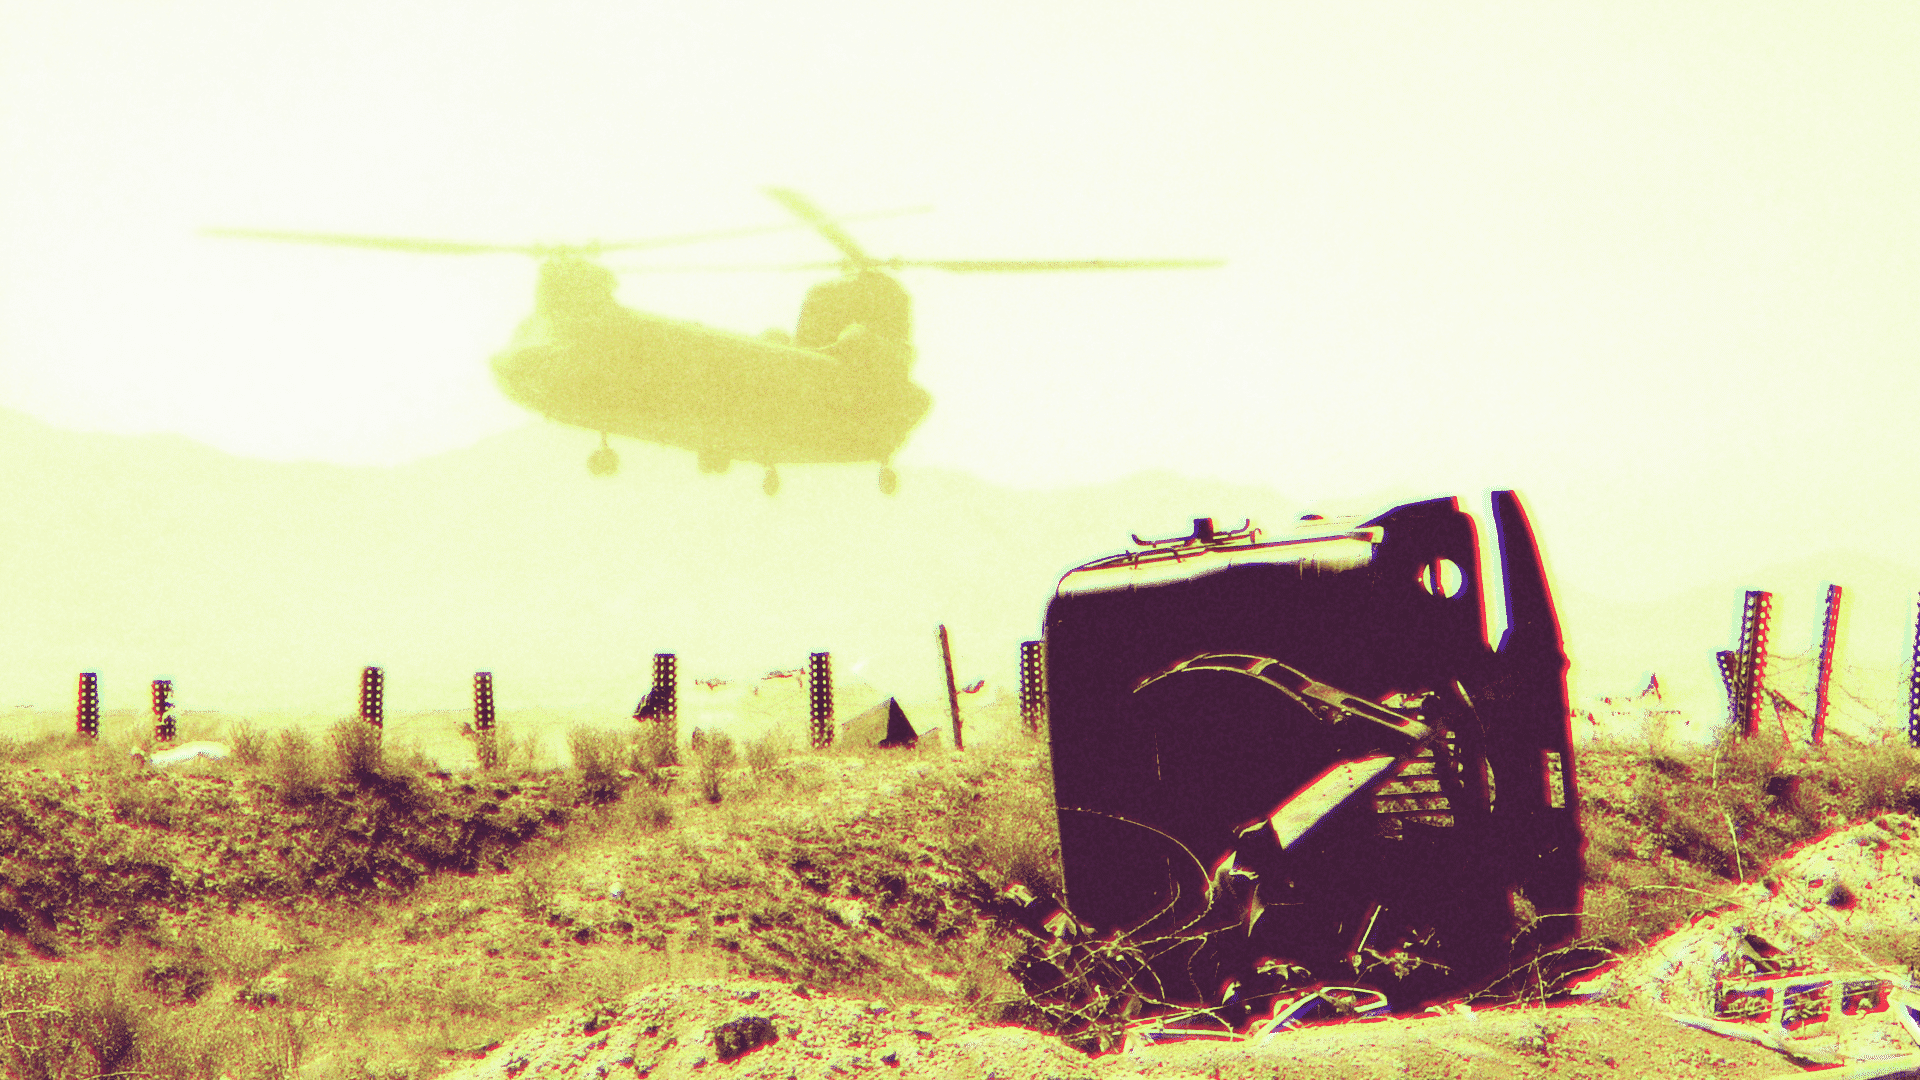 U.S. Chinook military helicopter in Afghanistan.